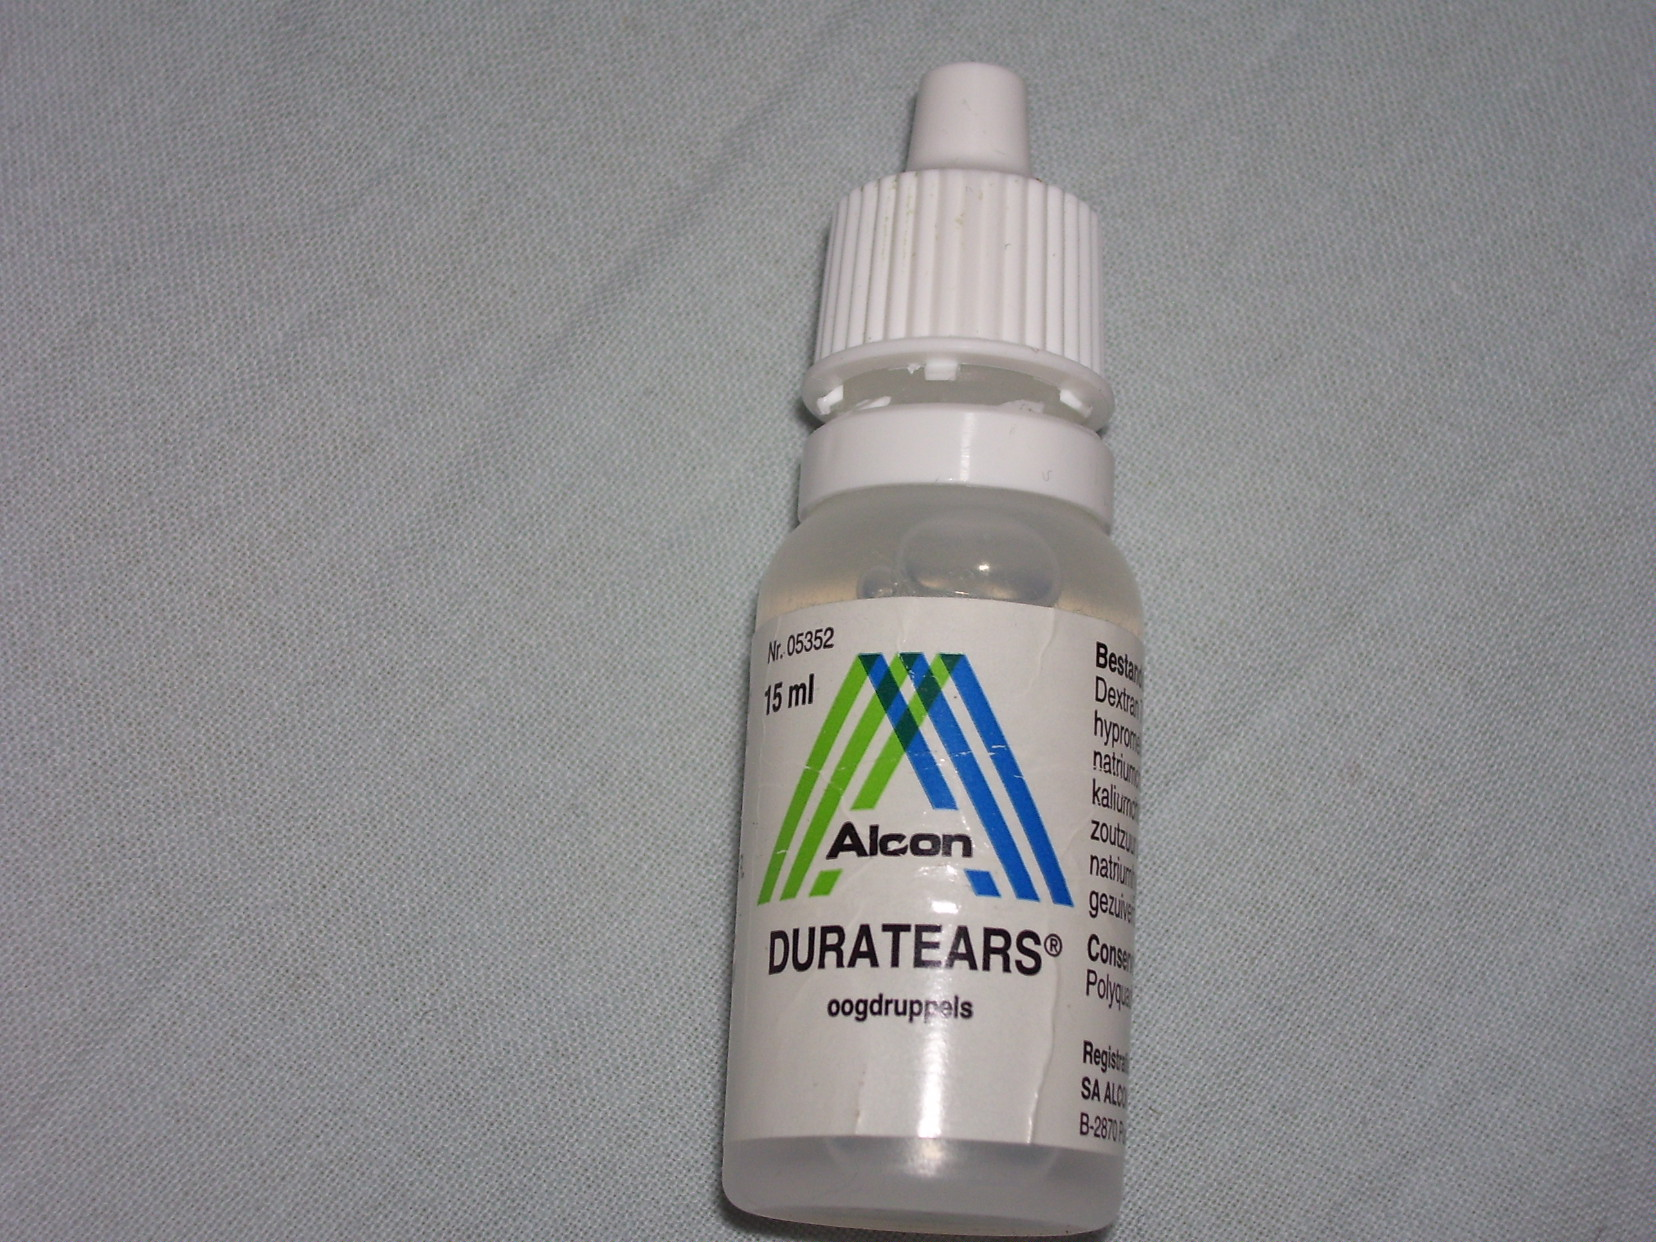 duratears free oogdruppels